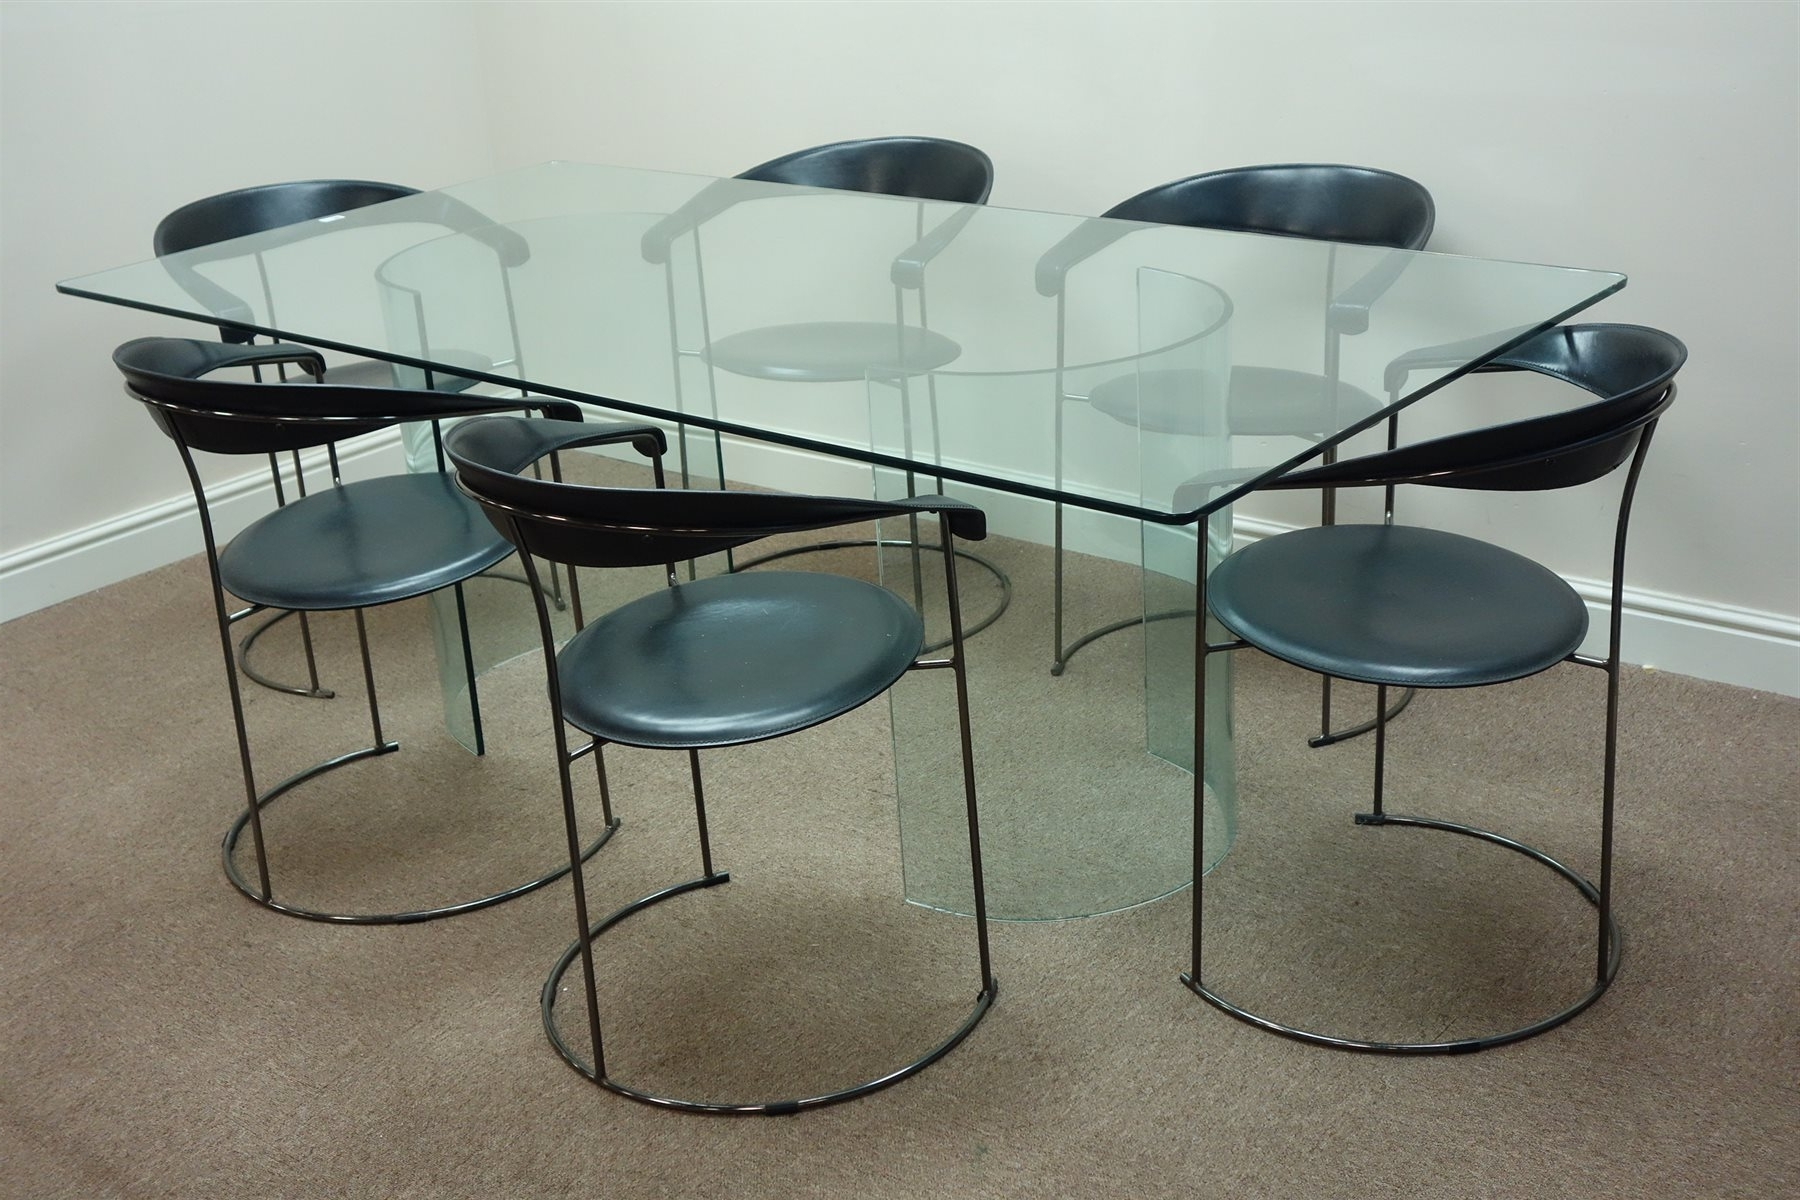 Most Popular Curved Glass Dining Tables Within 1960S Rectangular Glass Dining Table On Two Curved Glass Pedestals (View 15 of 25)